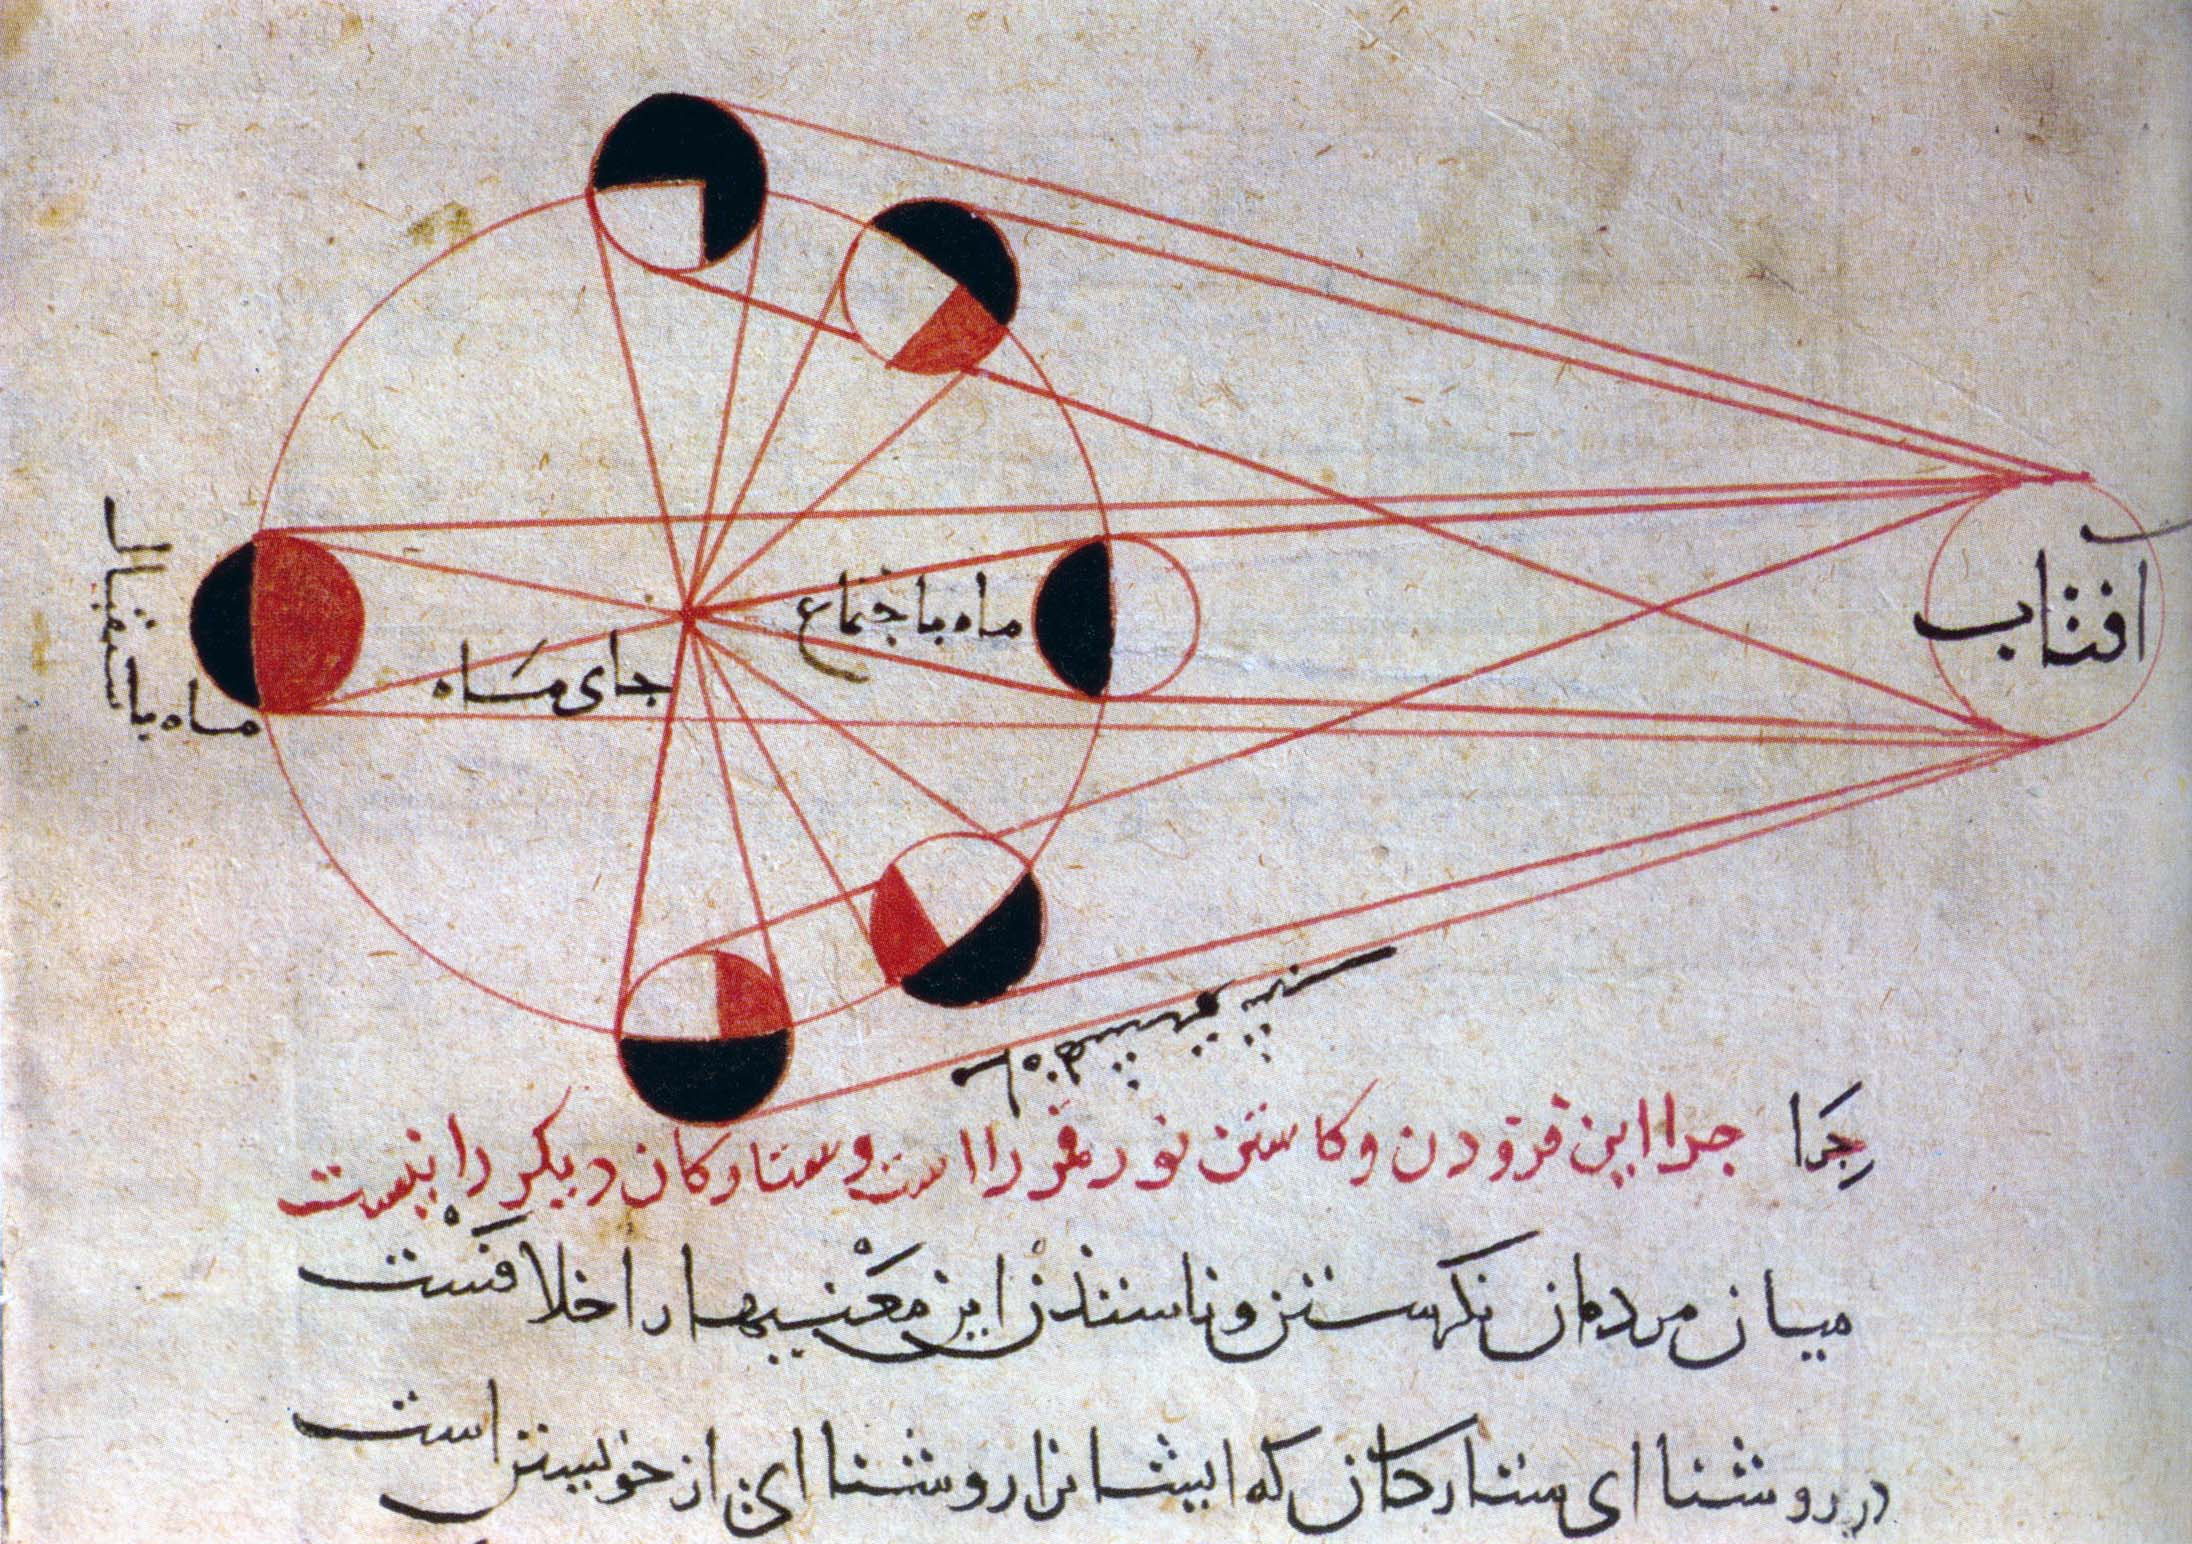 islam mathematics and astronomy - photo #1